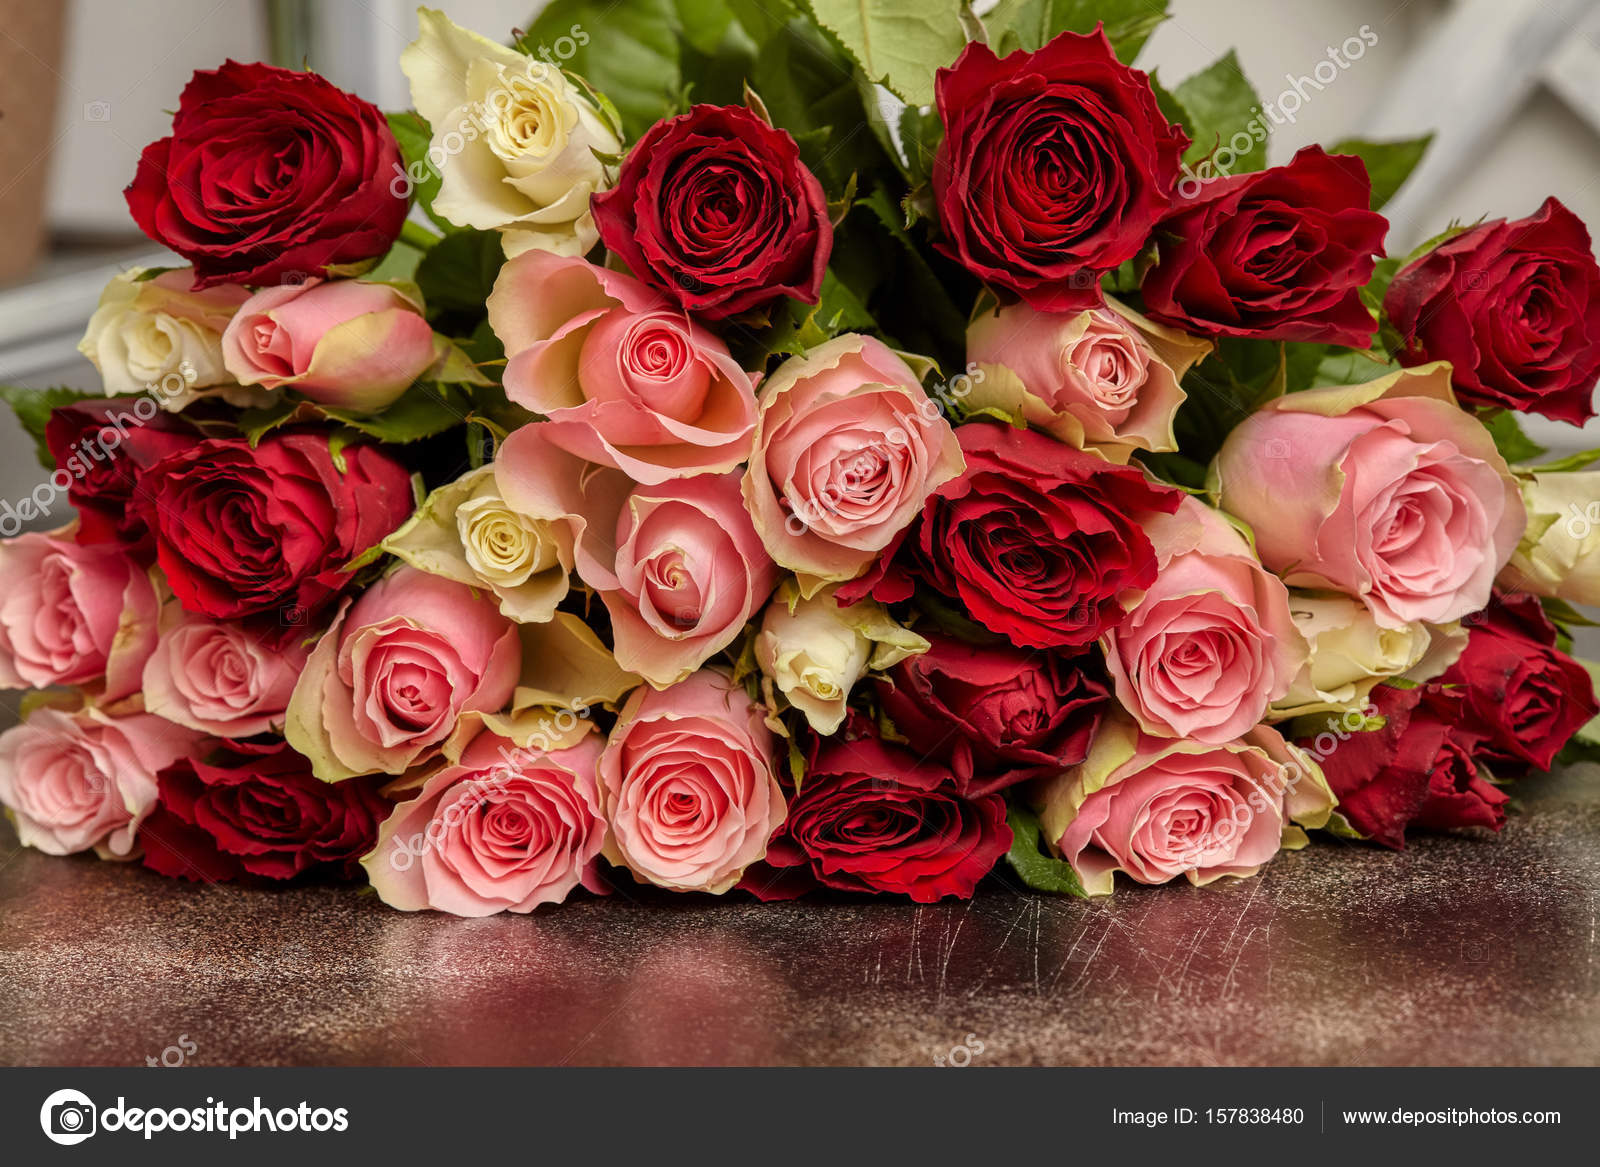 Big bouquet of multicolored roses on table stock photo hdtexx big bouquet of multicolored roses on table stock photo izmirmasajfo